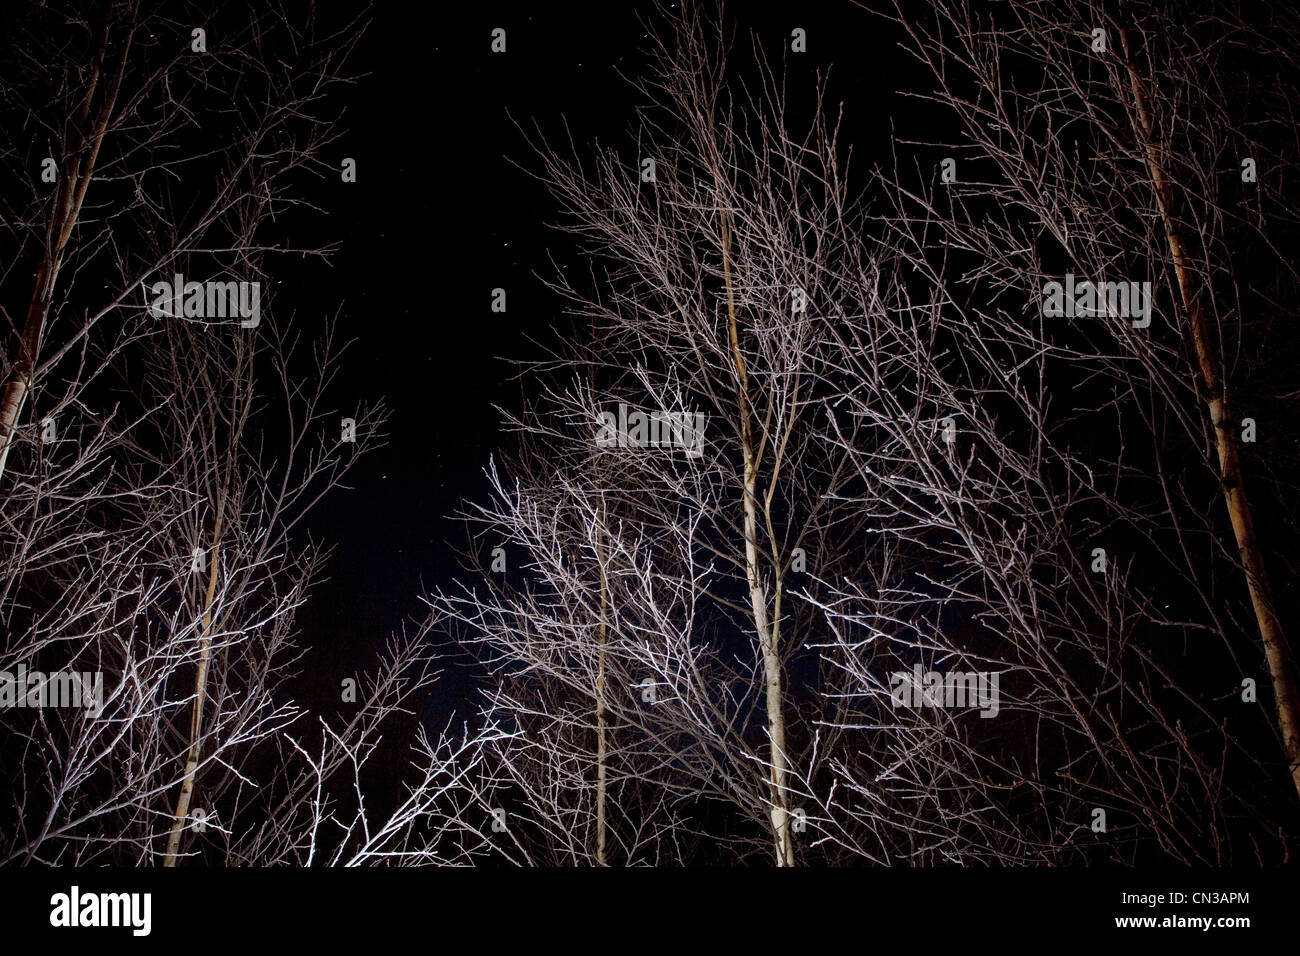 Bare trees at night, low angle - Stock Image